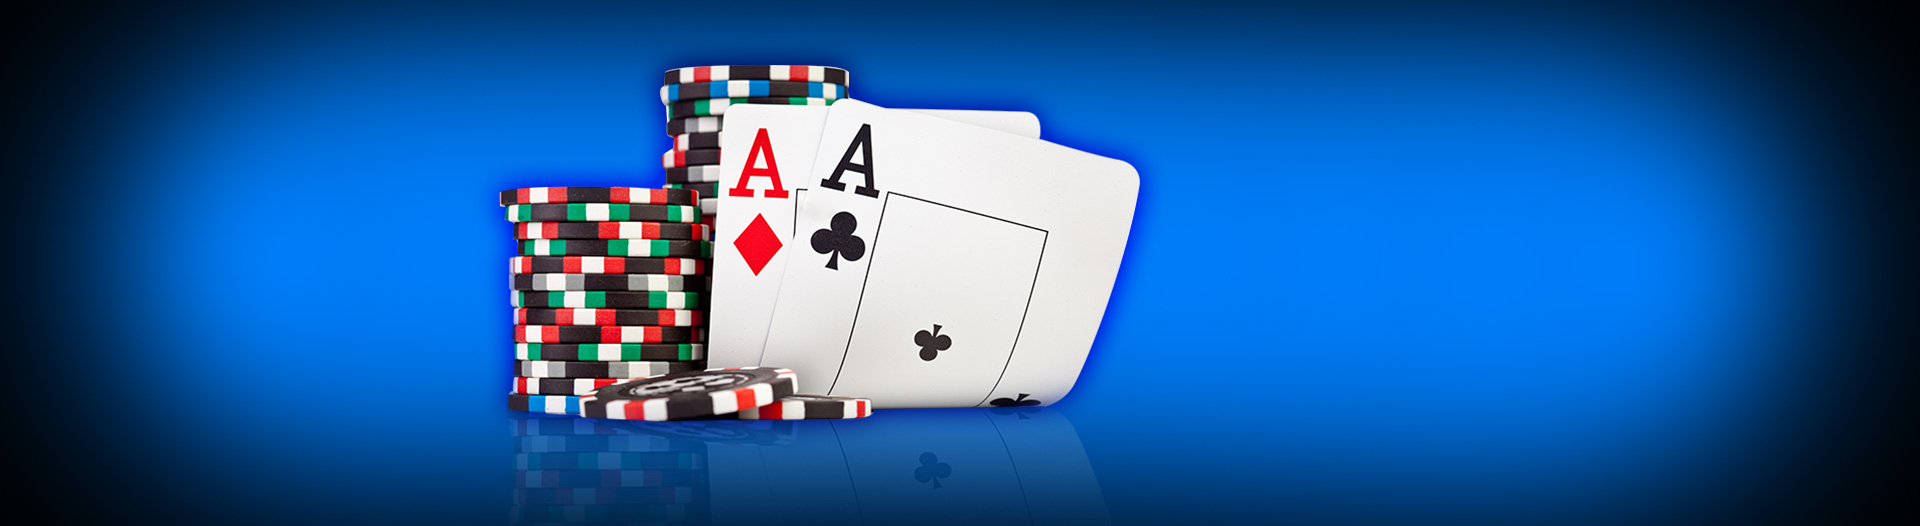 888 poker download deutsch